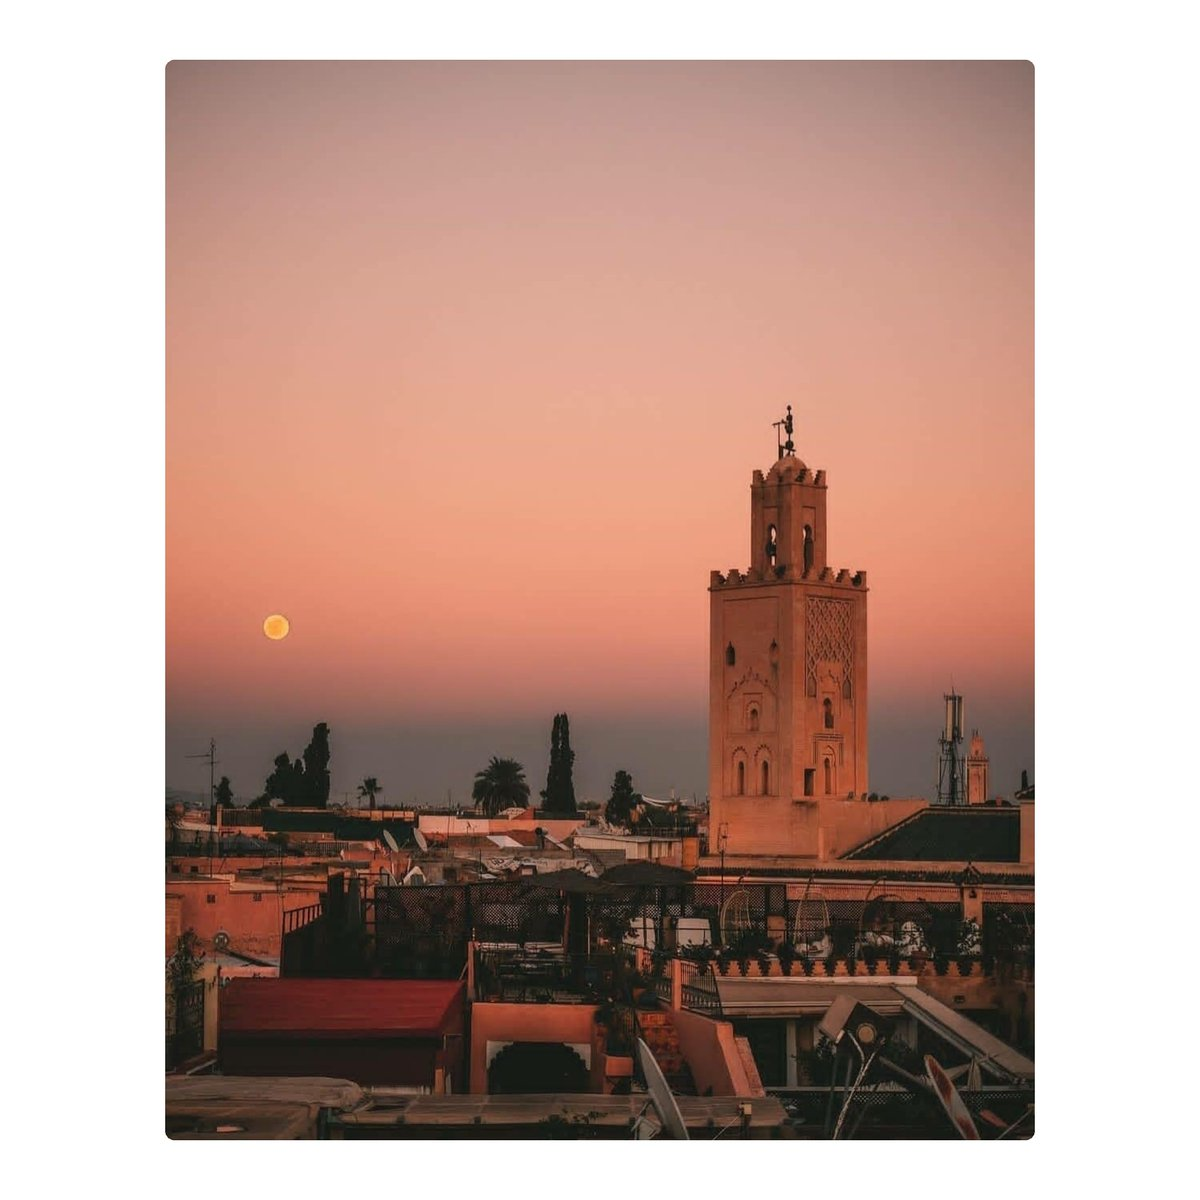 Morocco  . #morocco #photooftheday #discovermorocco #beautifulplace #citytrip #travelling #travelpost #instapic #capture #skylovers #sunet #view